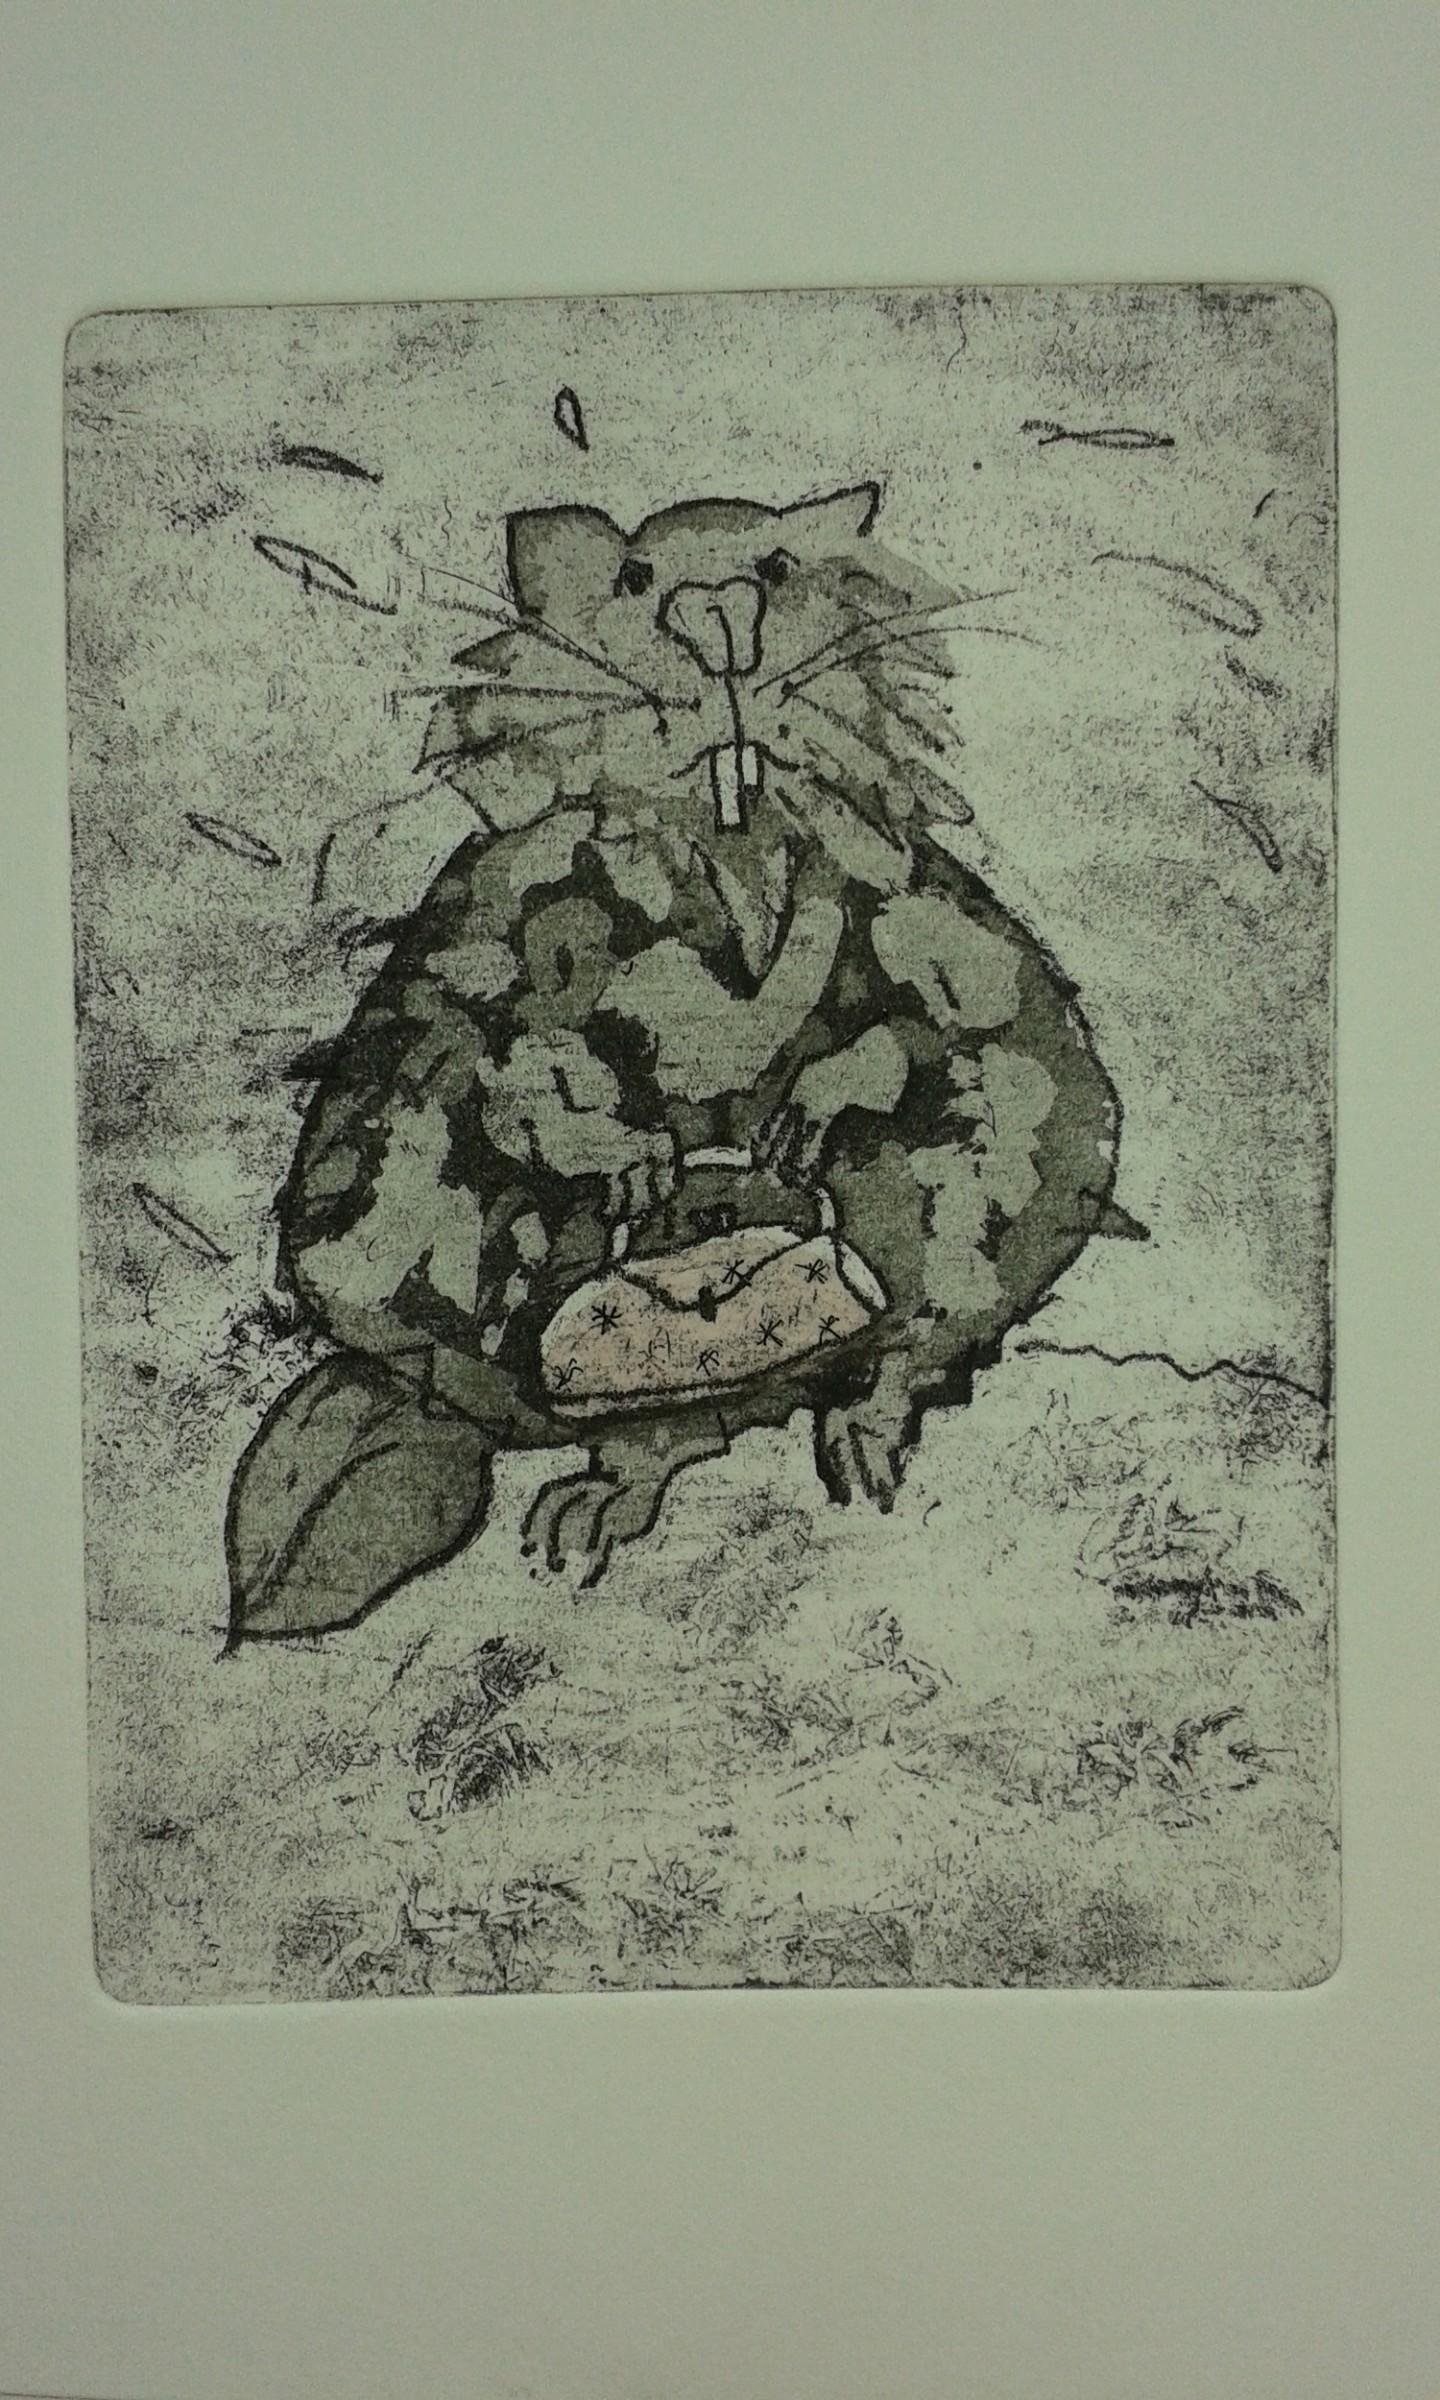 """<span class=""""link fancybox-details-link""""><a href=""""/exhibitions/17/works/image_standalone679/"""">View Detail Page</a></span><p><strong>Nina Federley</strong></p><p>New Handbag</p><p>etching, aquatint, chine collee, intaglio, 1/1</p><p>28 x 34cm</p><p>£160 framed</p><p></p>"""